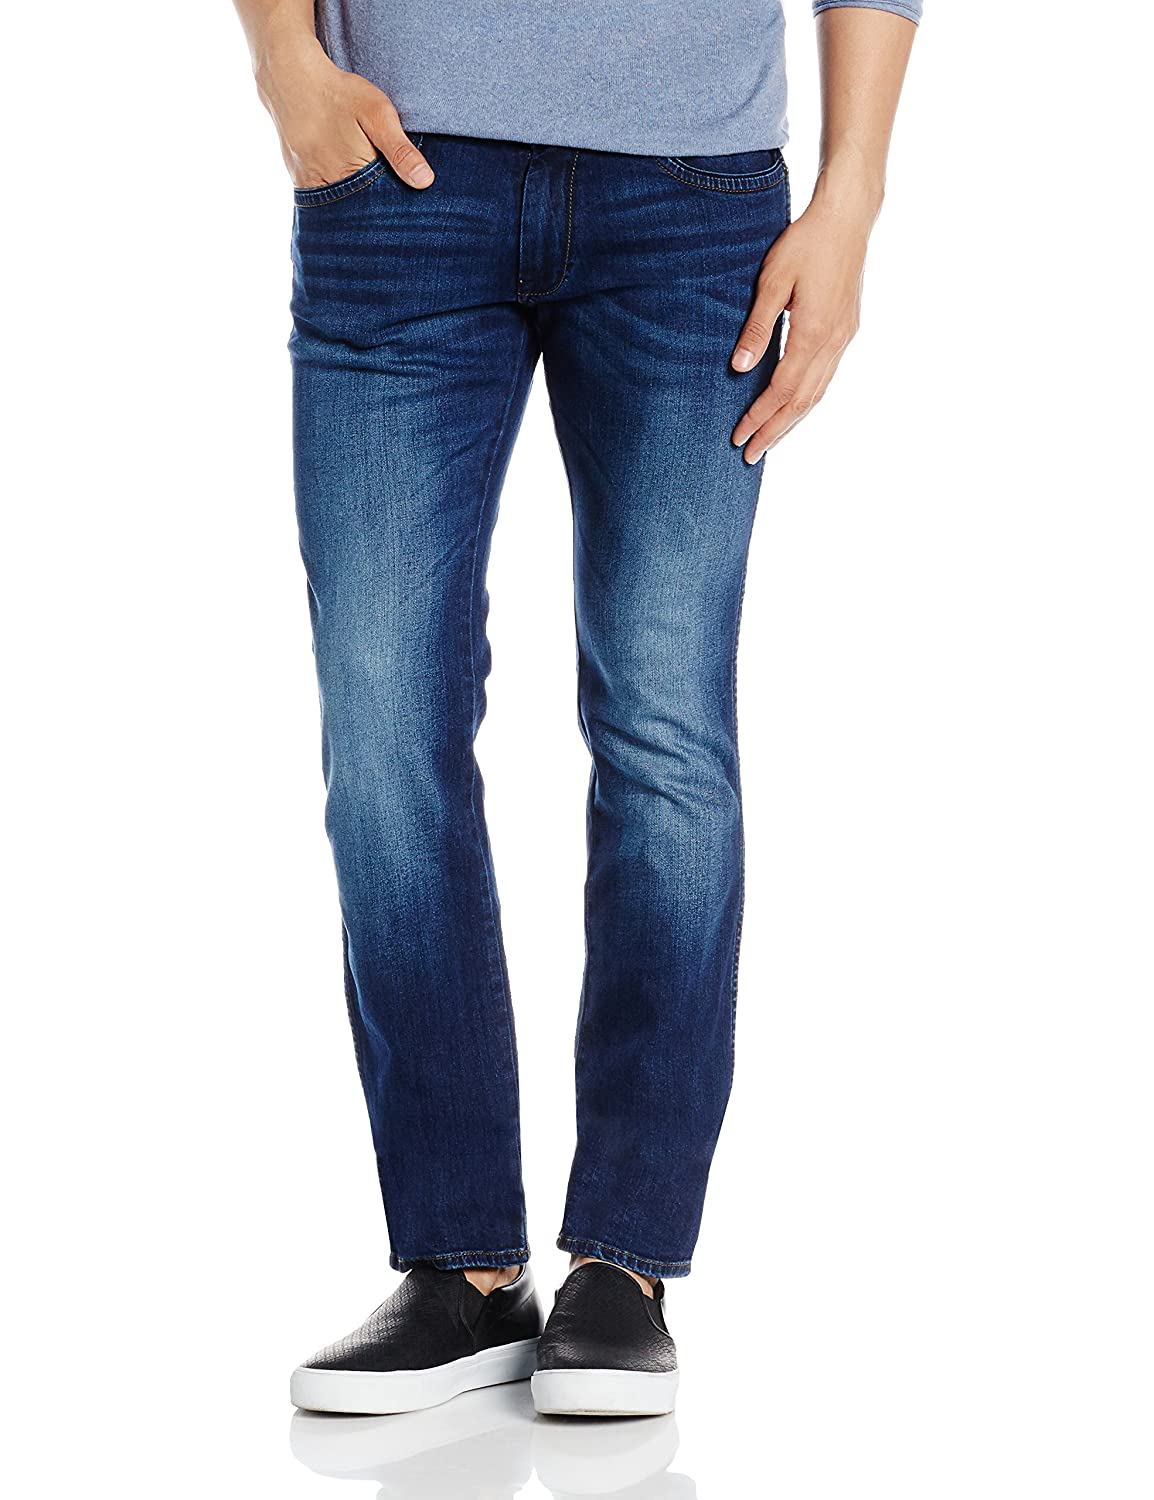 Amazon Fashion Denim Fest!! 40% - 60% Off On Clothing By Amazon | Wrangler Men's Slim Fit Jeans @ Rs.1,747